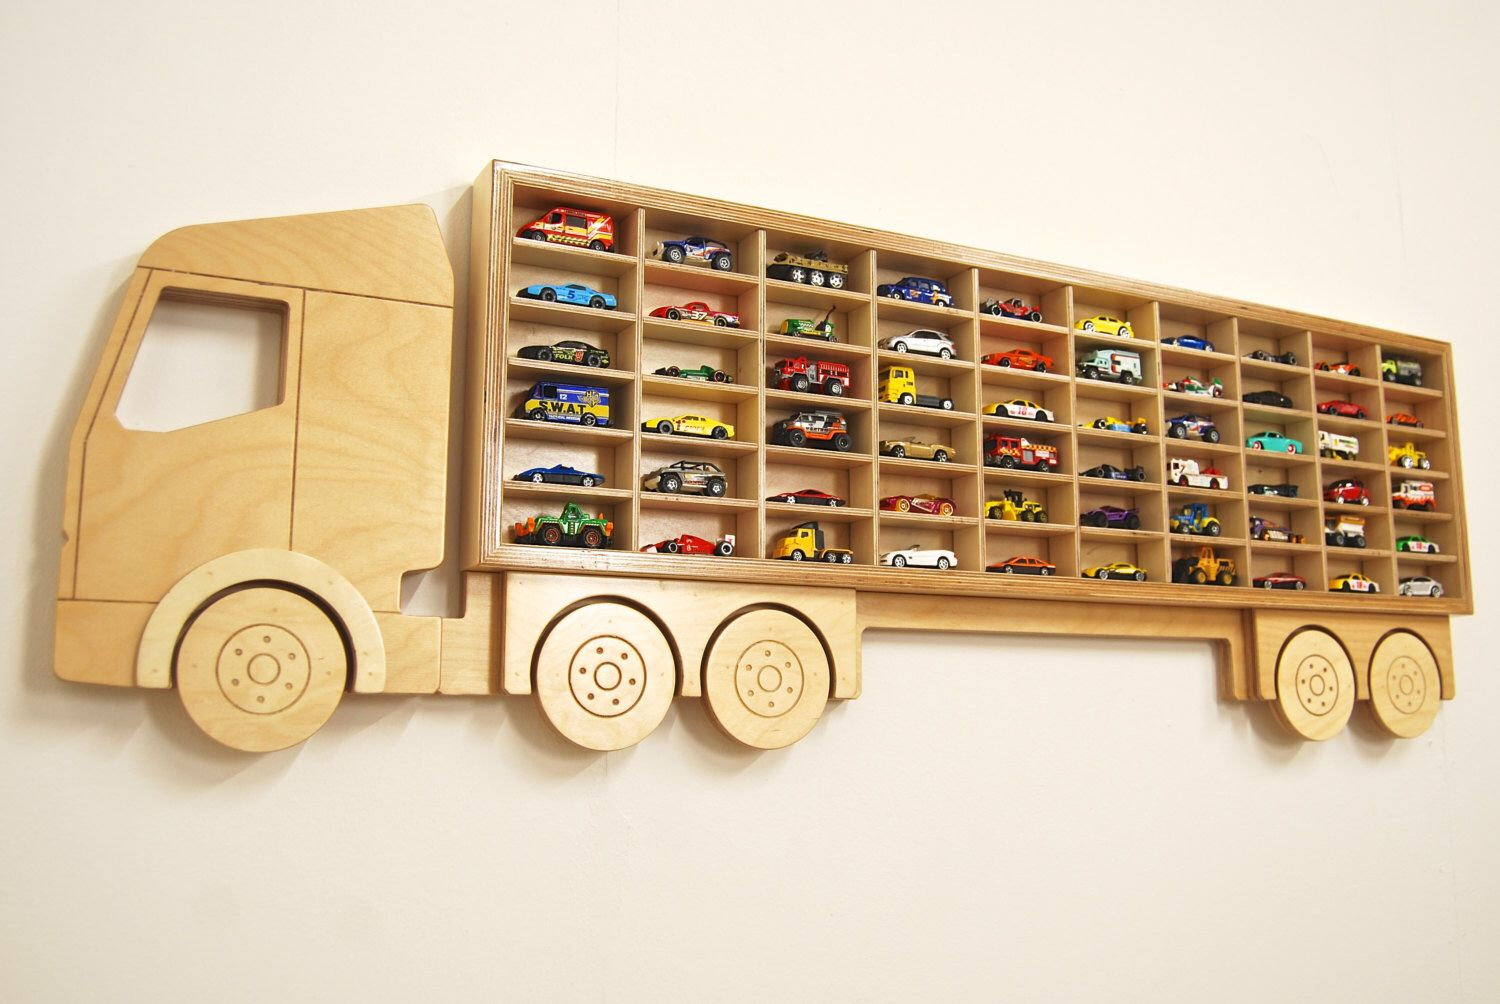 toy car storage boy's birthday gift idea for boys & girls